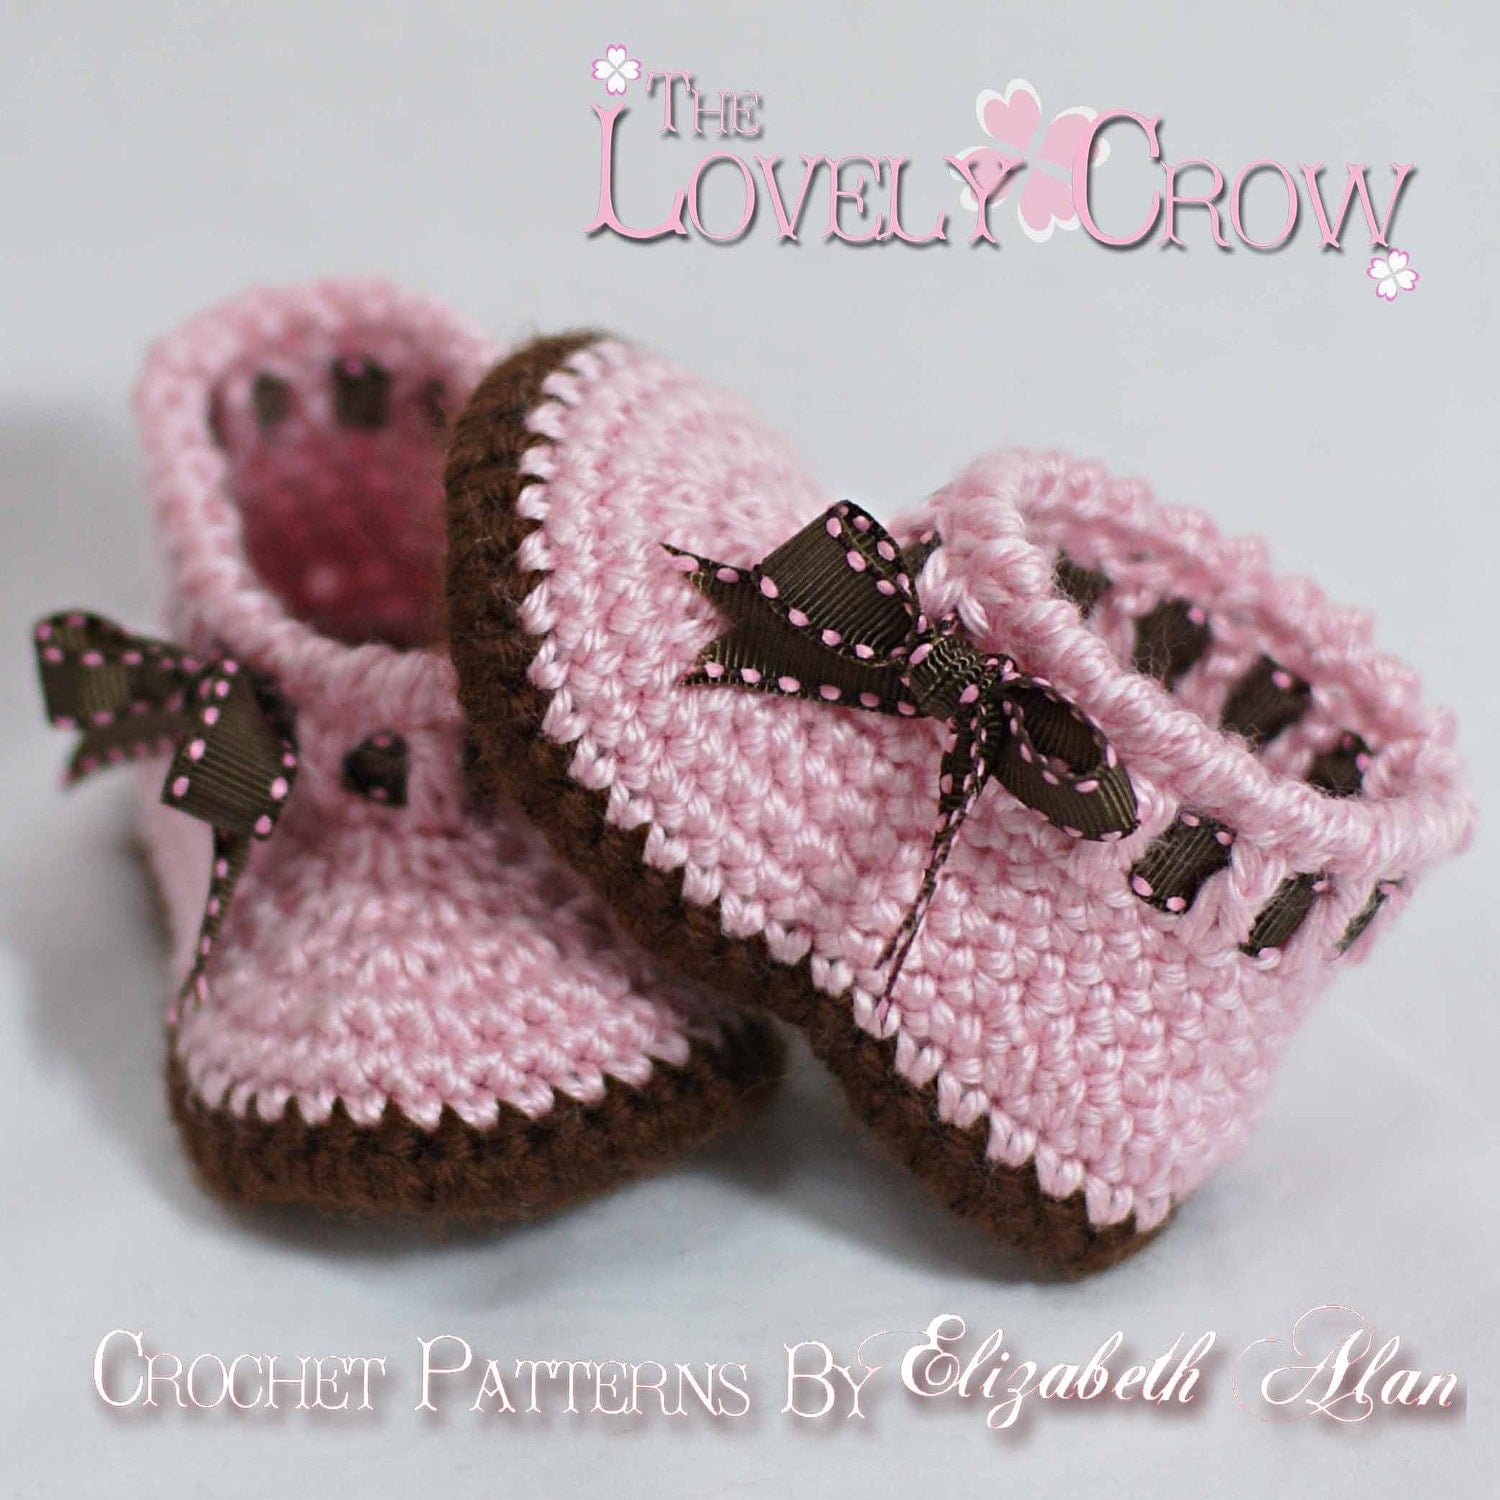 Crochet Patterns For Toddlers Slippers : EASY TODDLER CROCHET SLIPPERS PATTERN - Crochet and ...